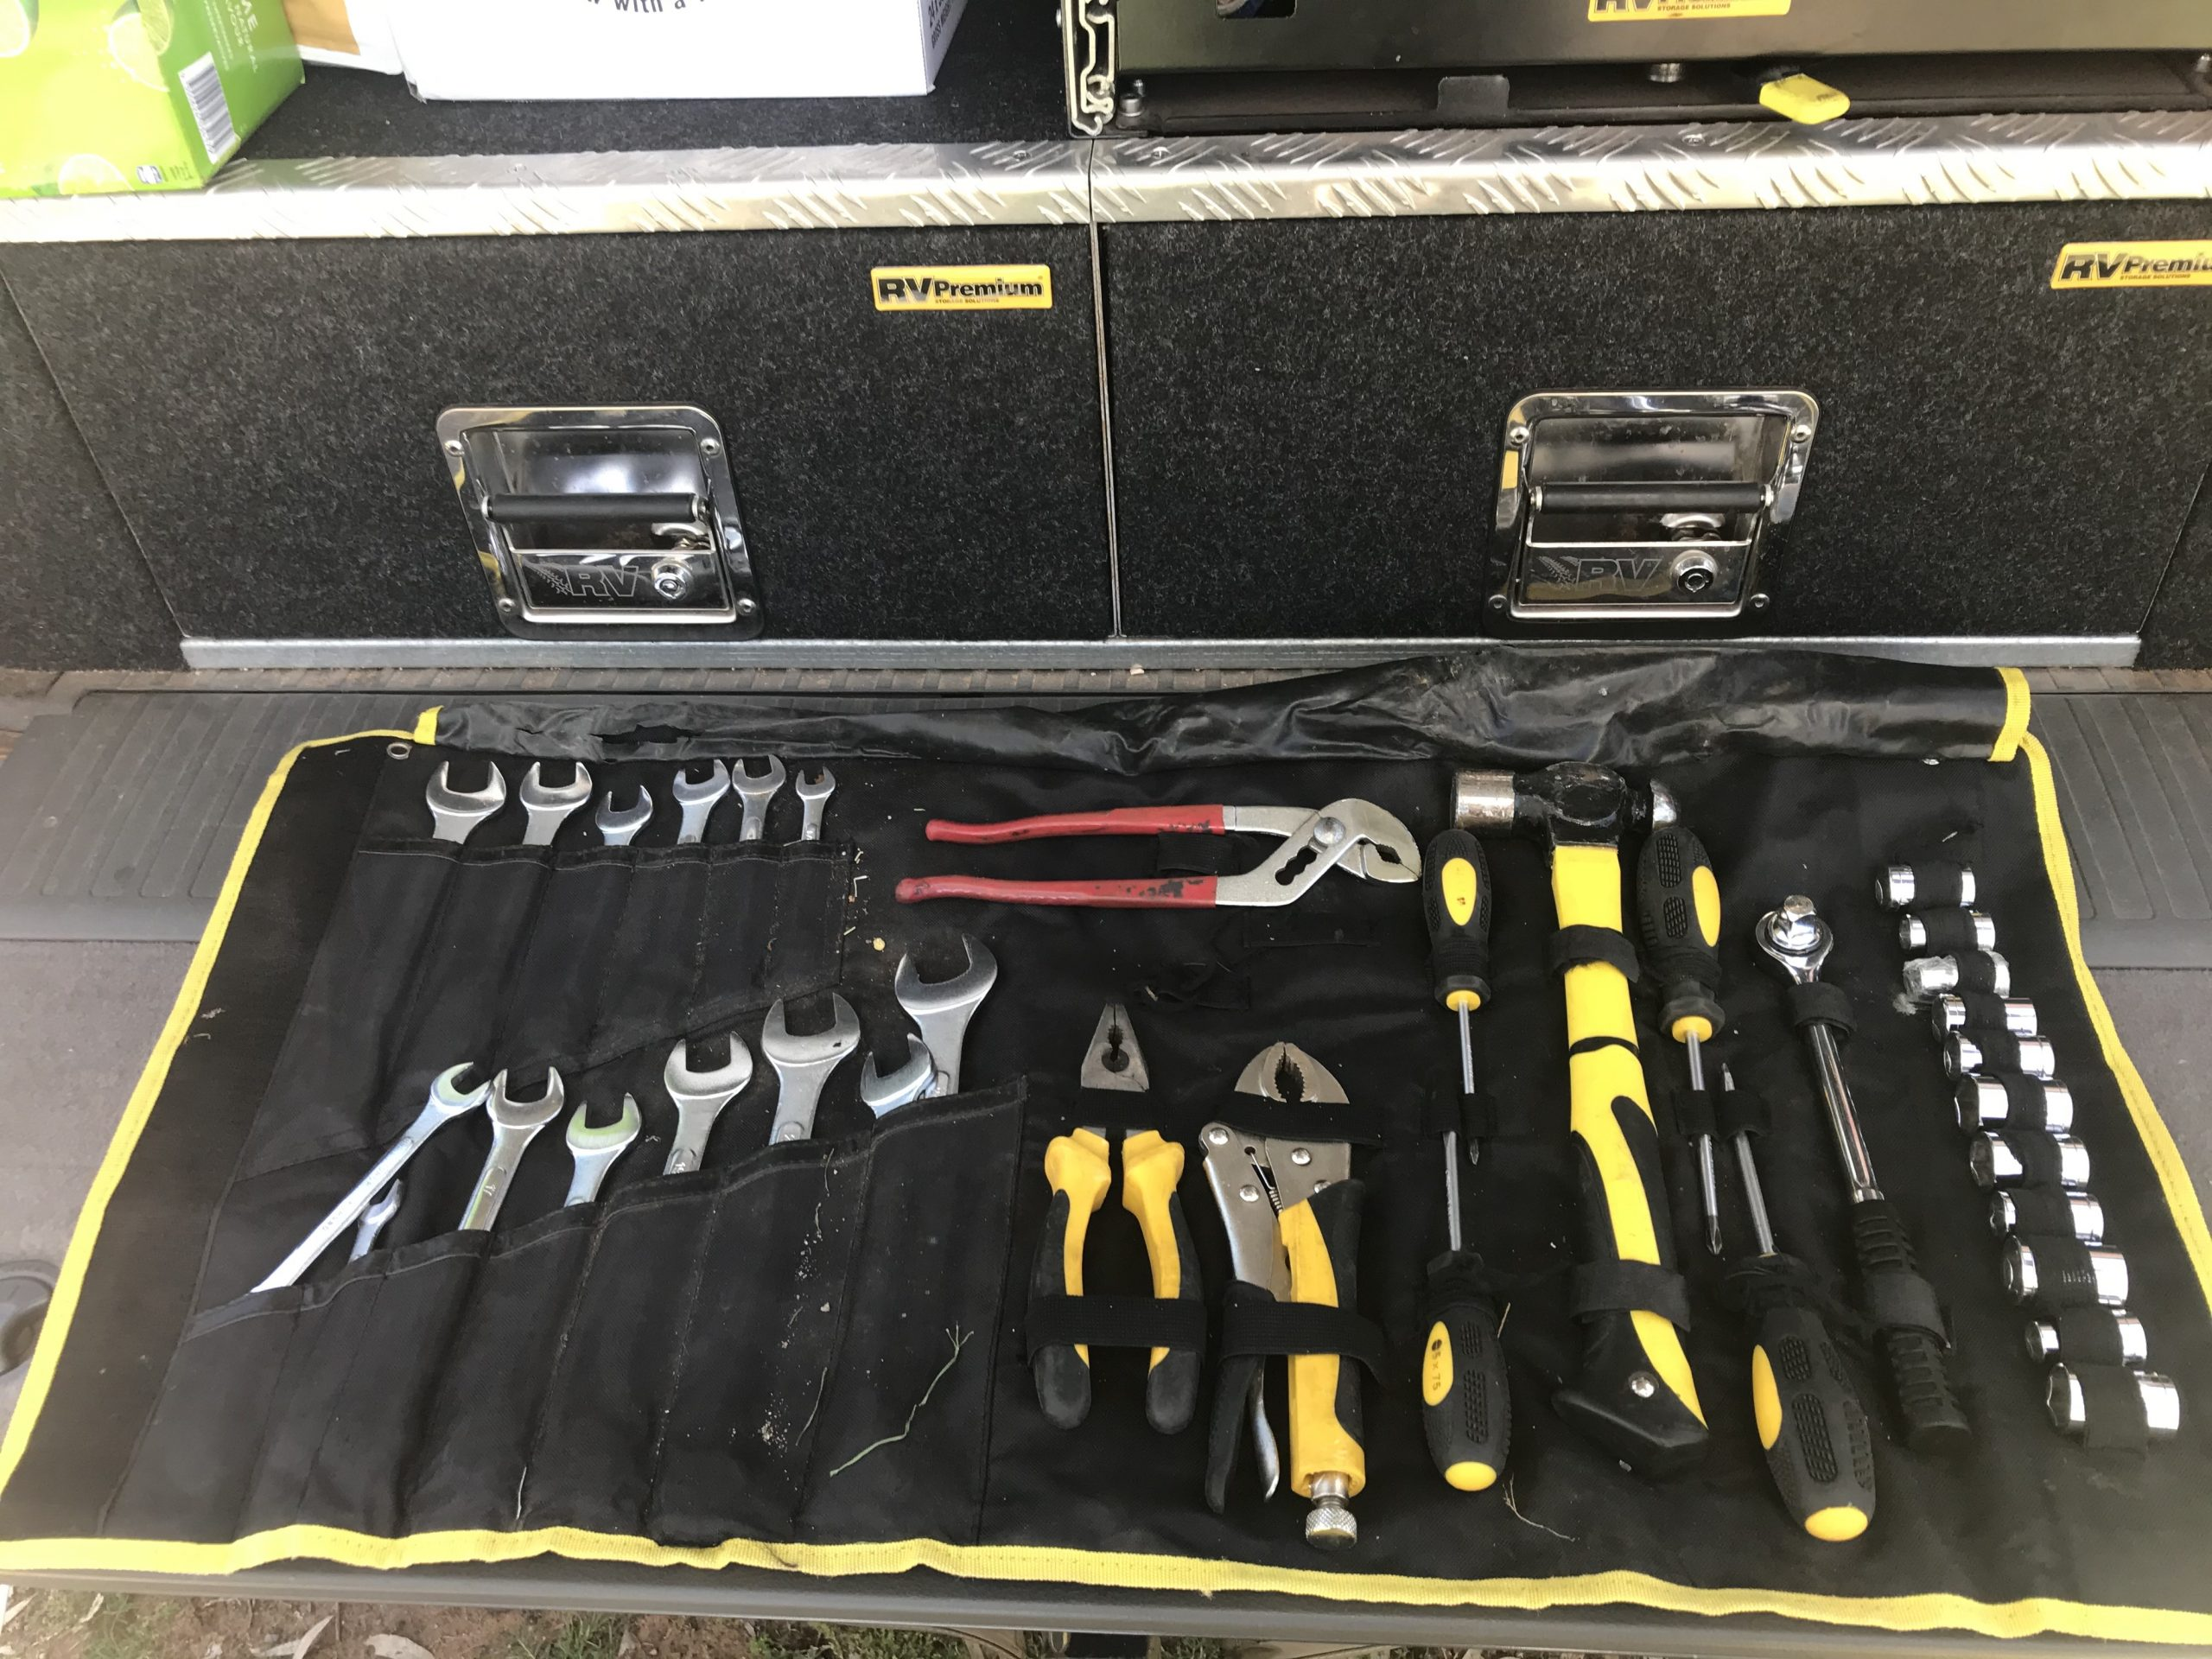 essential gear - Basic tool kit